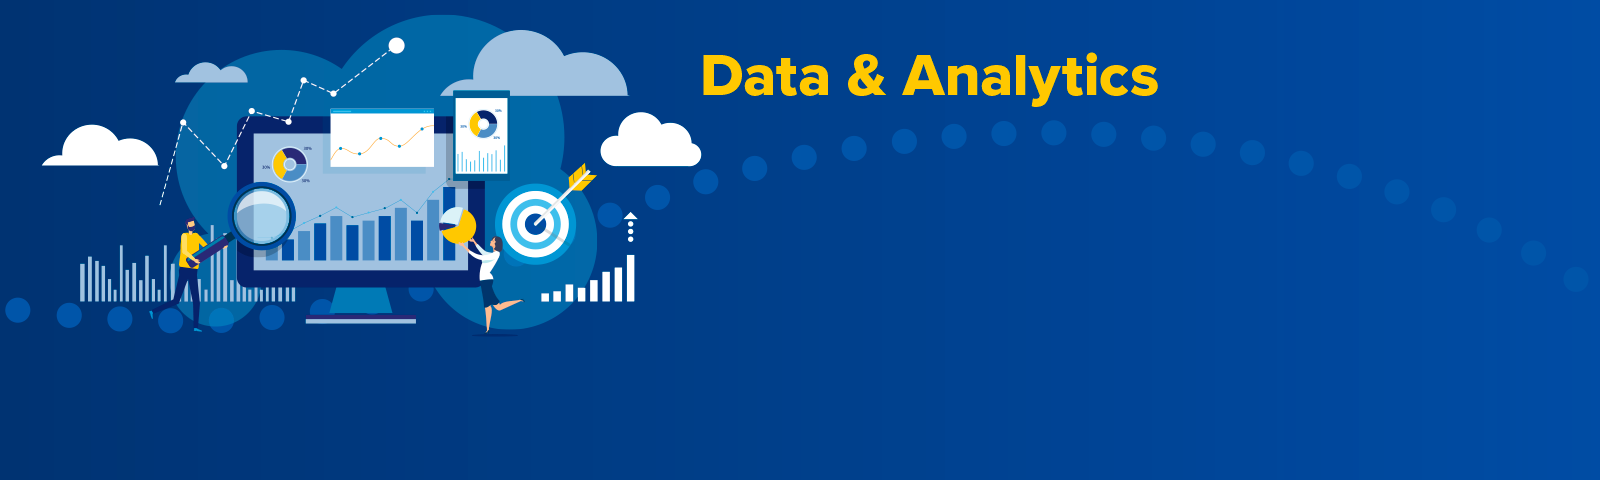 Data & Analytics - SAVE THE DATE – AGENDA is coming